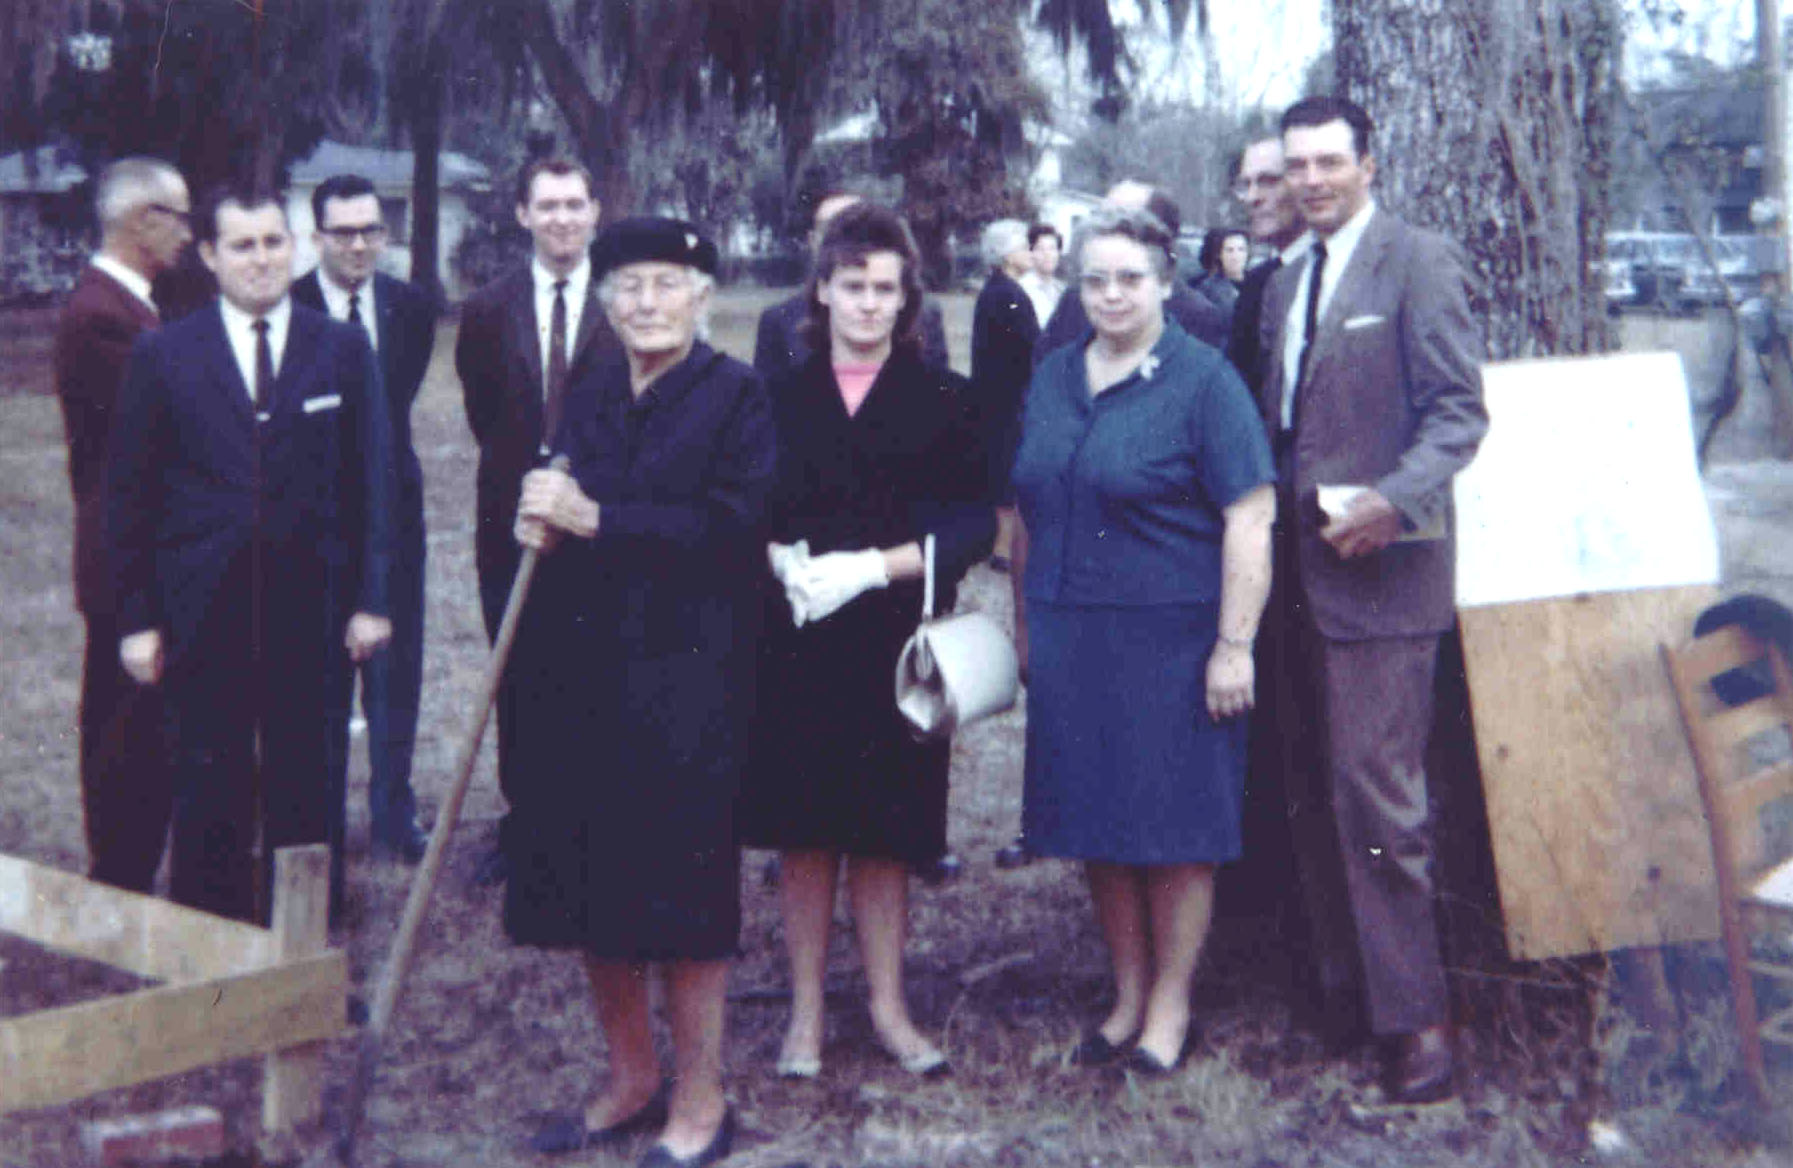 Groundbreaking Jan '67